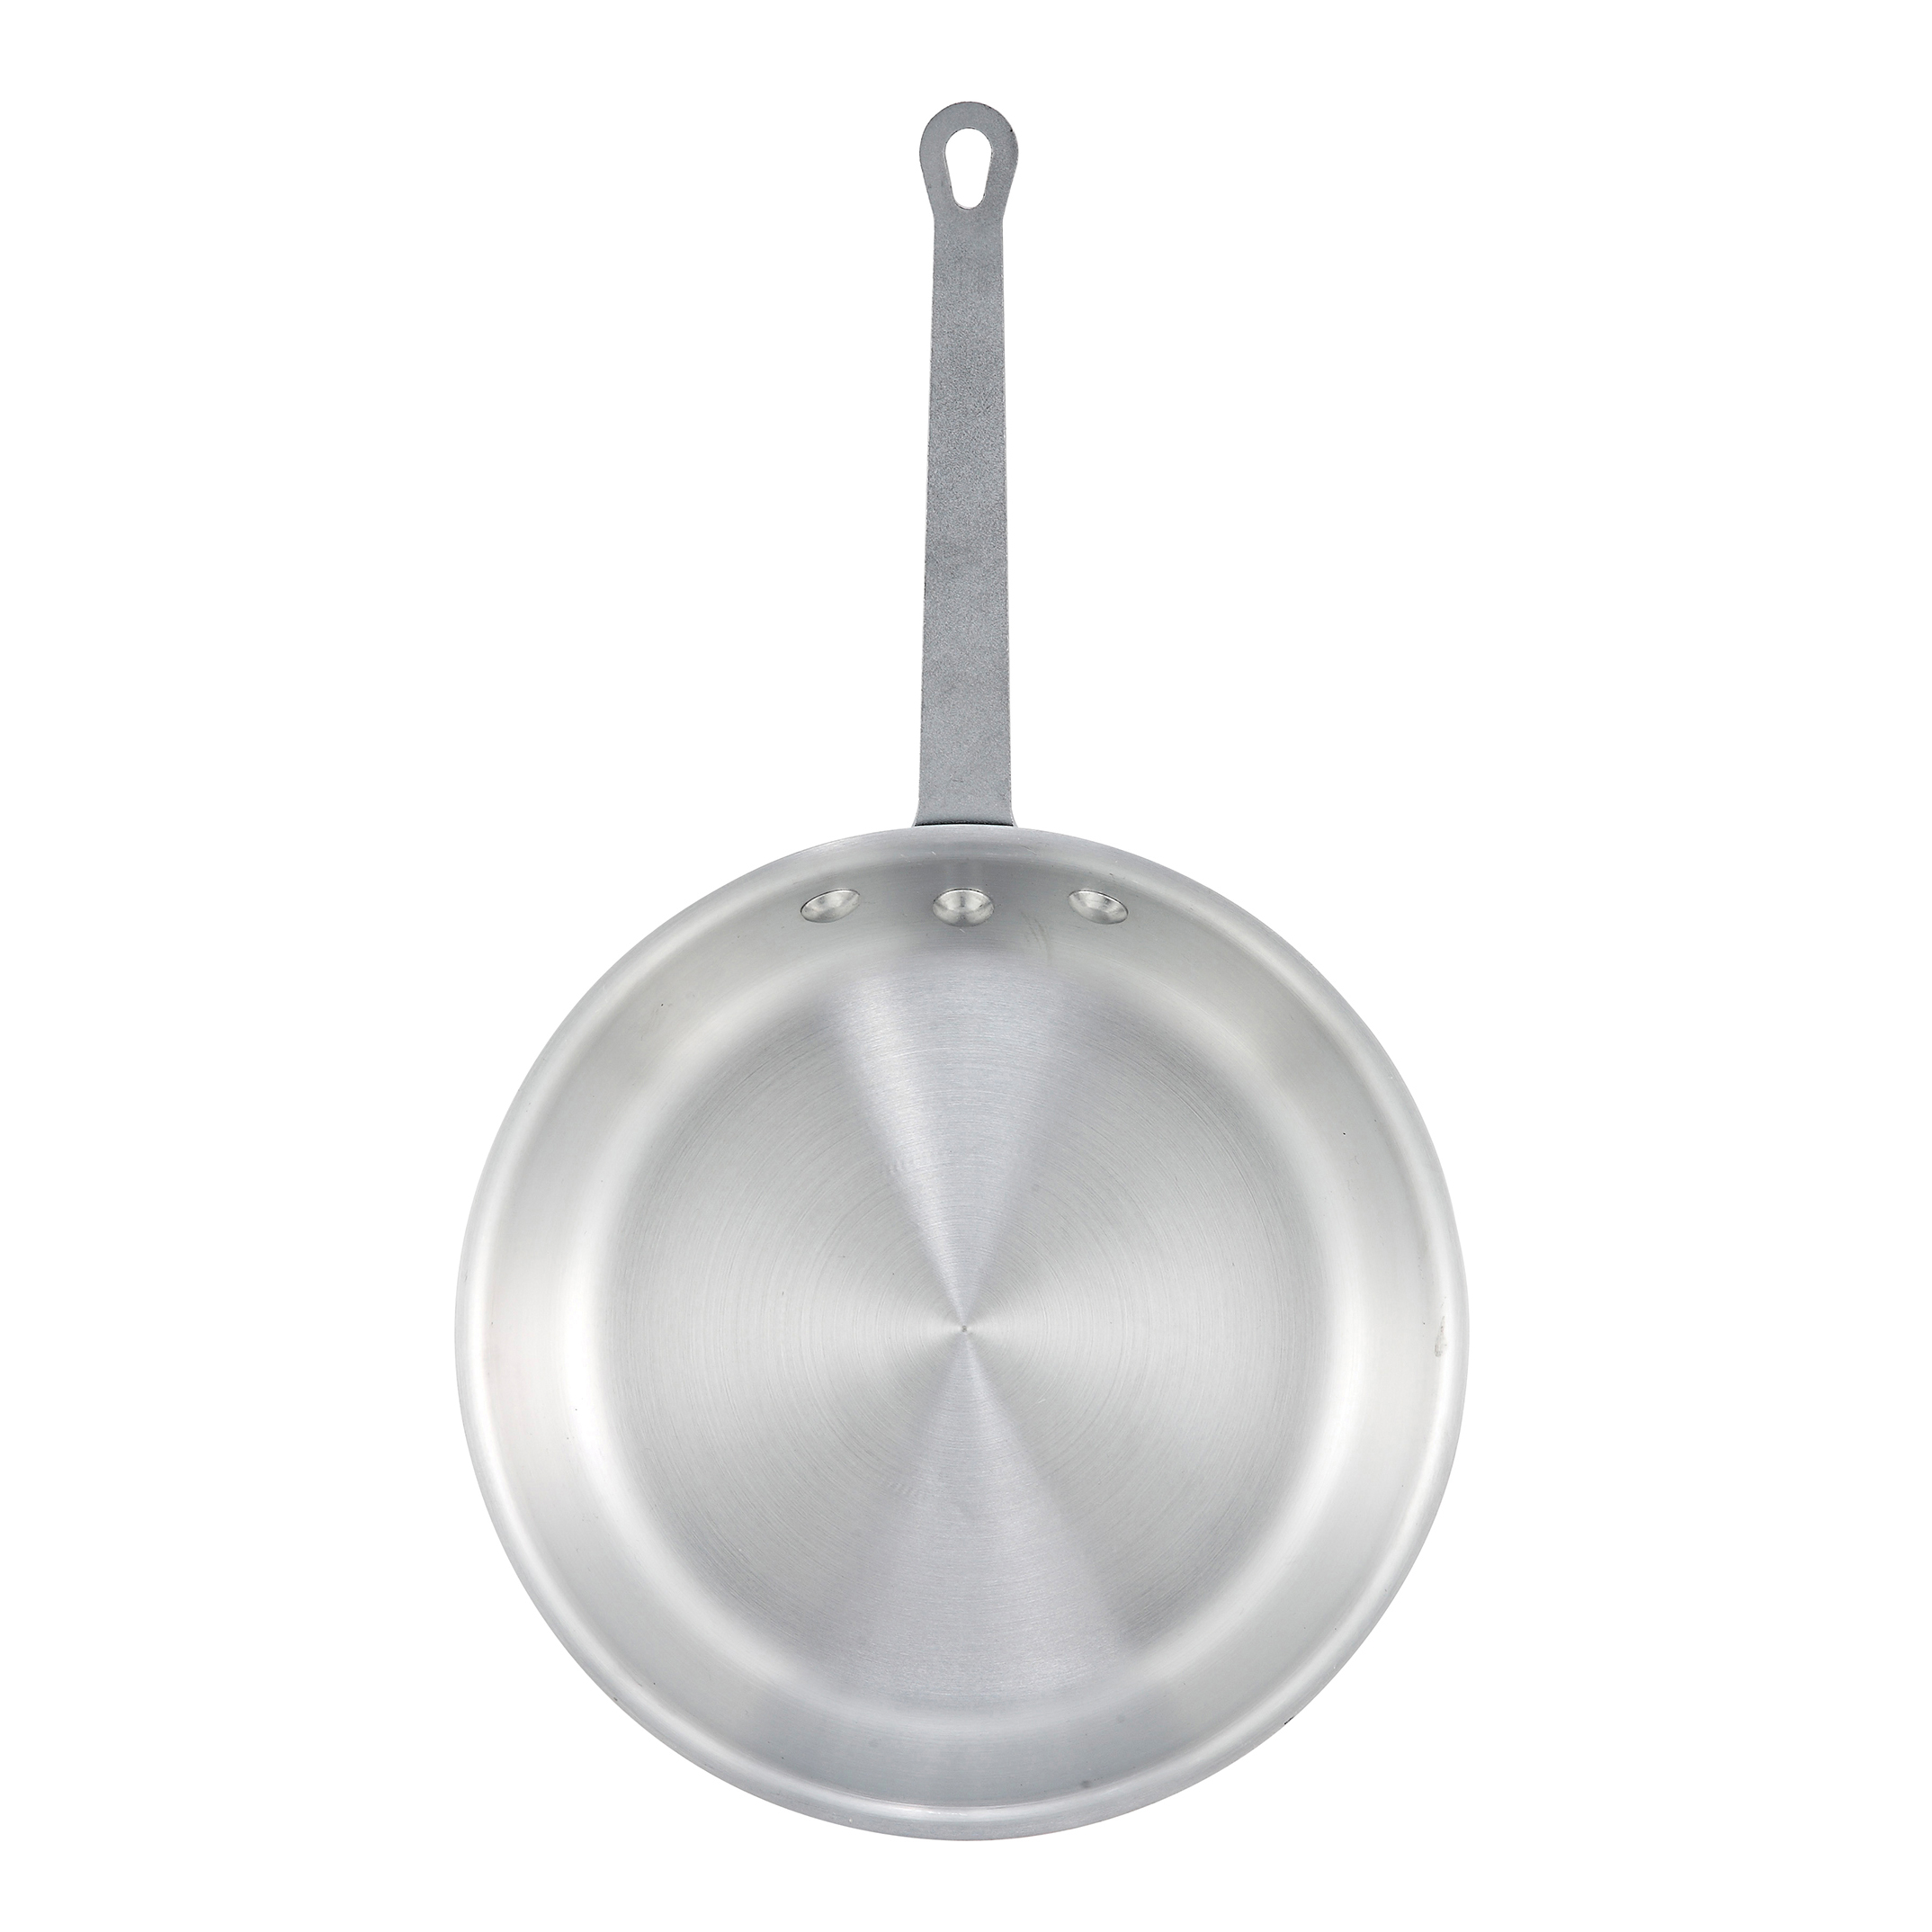 Winco AFP-8A fry pan